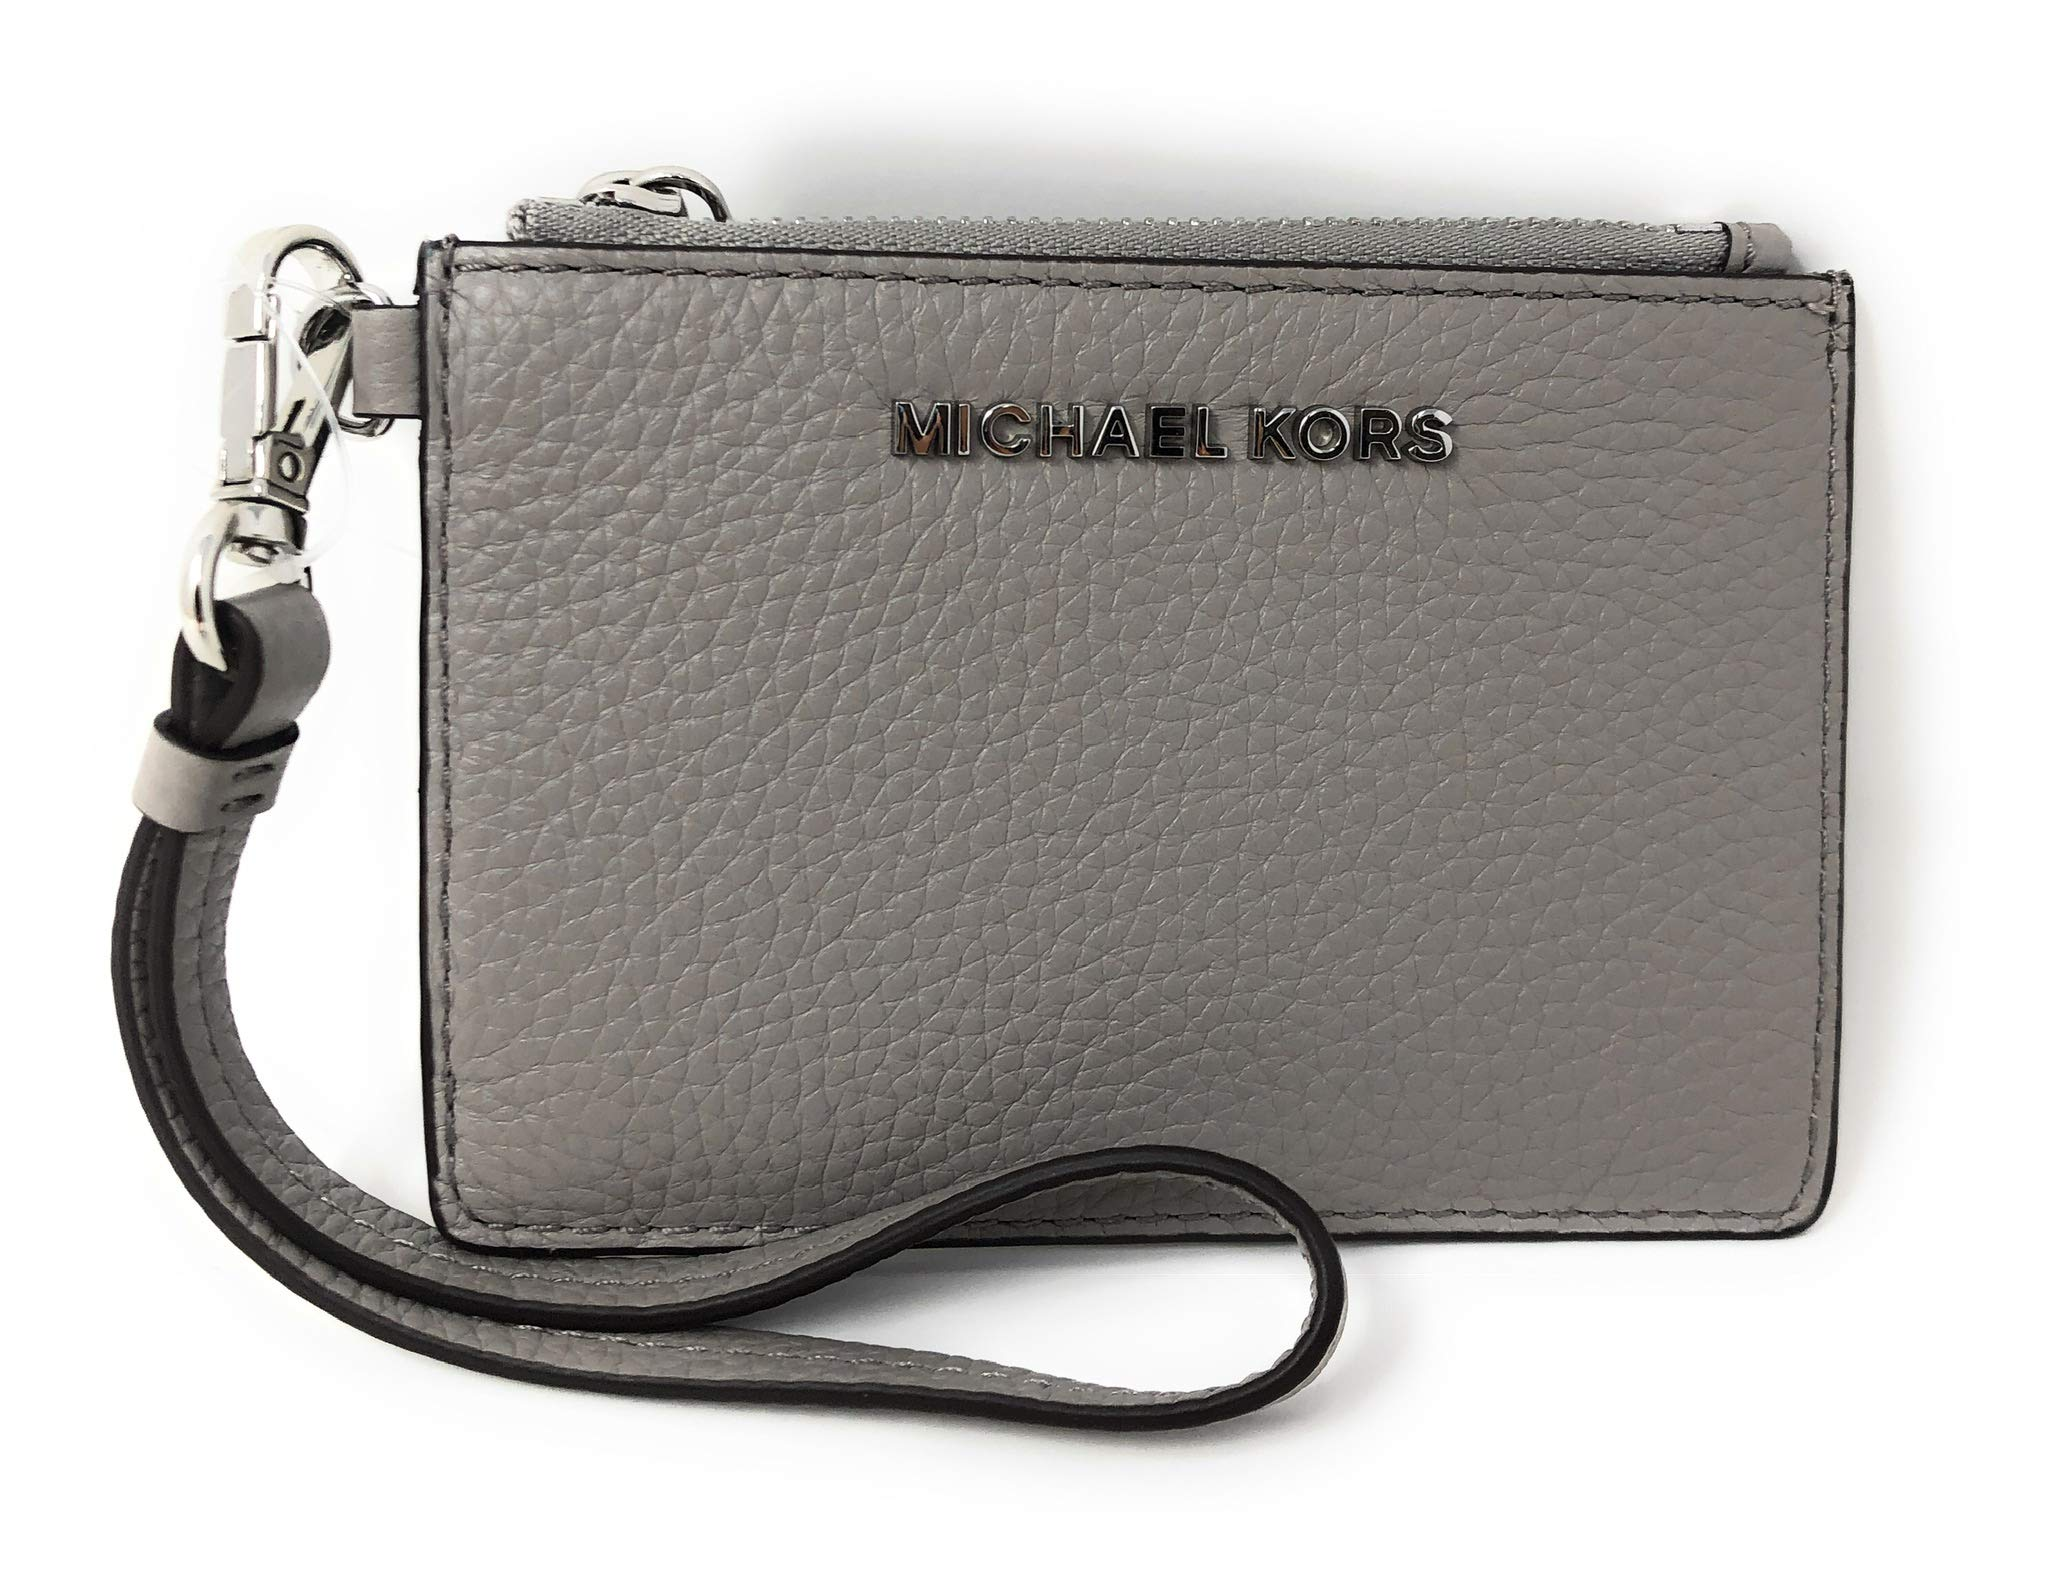 Michael Kors Coin Purse Card Case Wristlet Wallet Pearl Grey